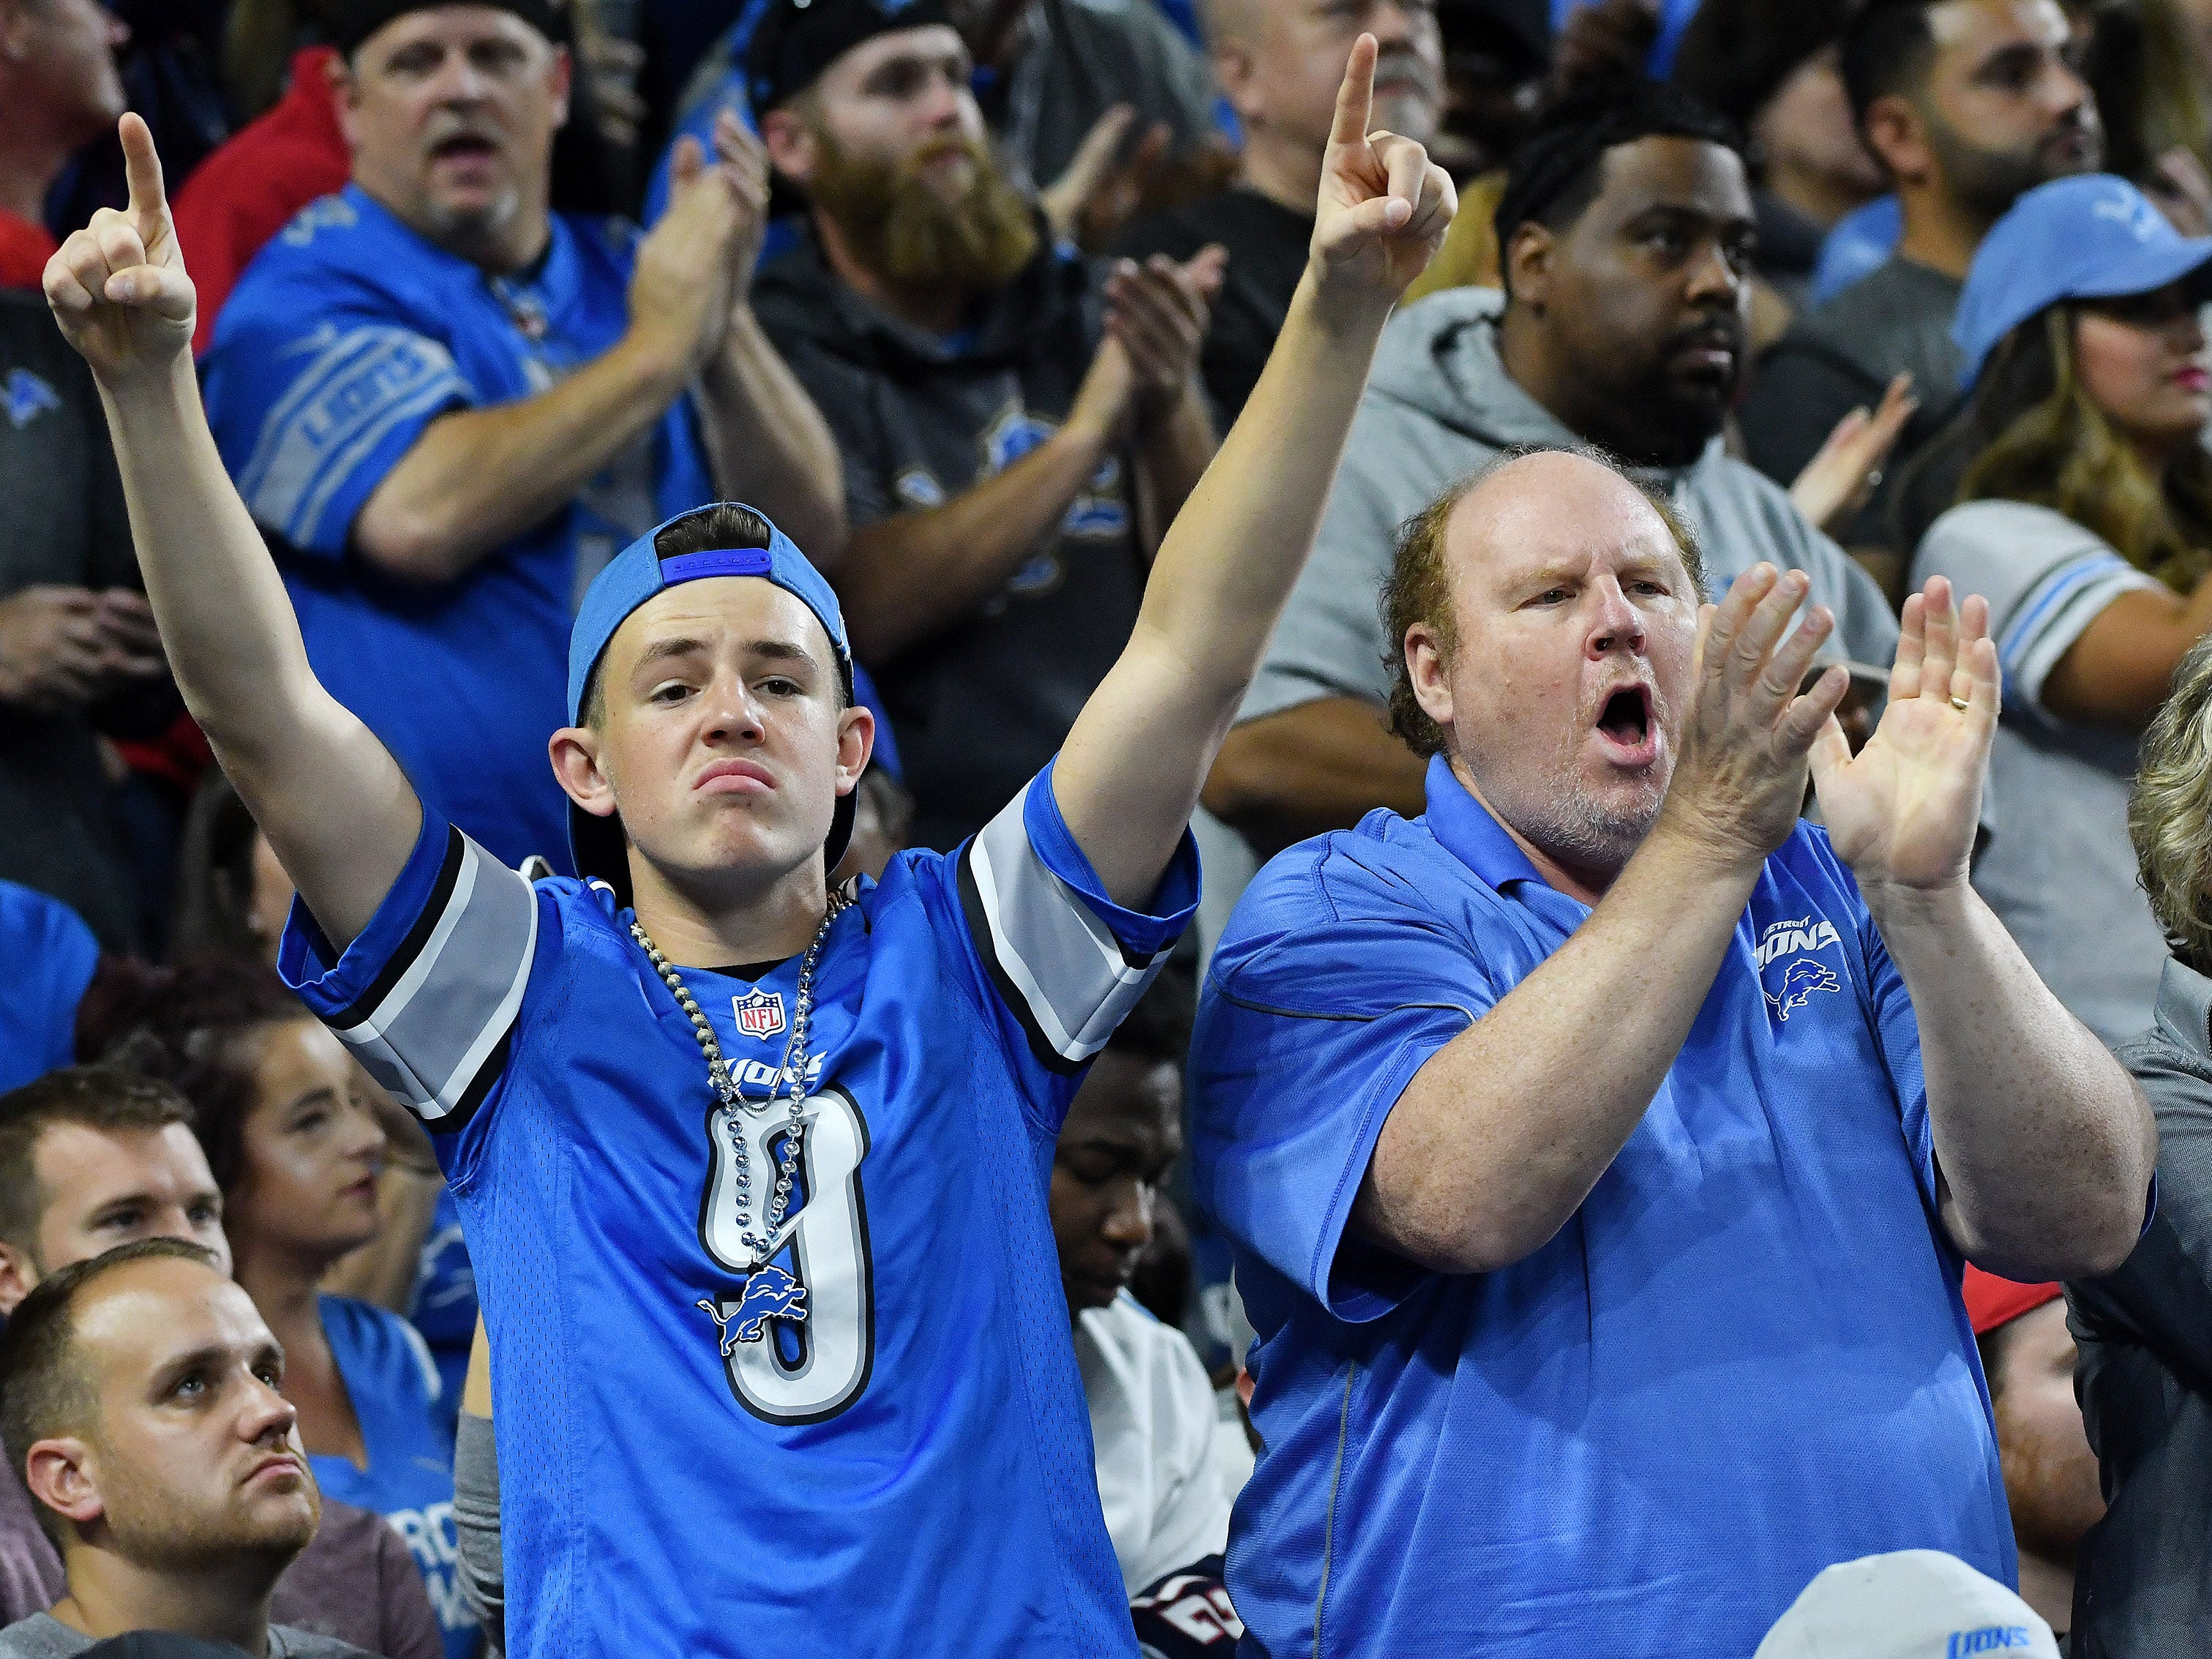 Lions fans cheer after the play in the second quarter is ruled a touchdown after review.